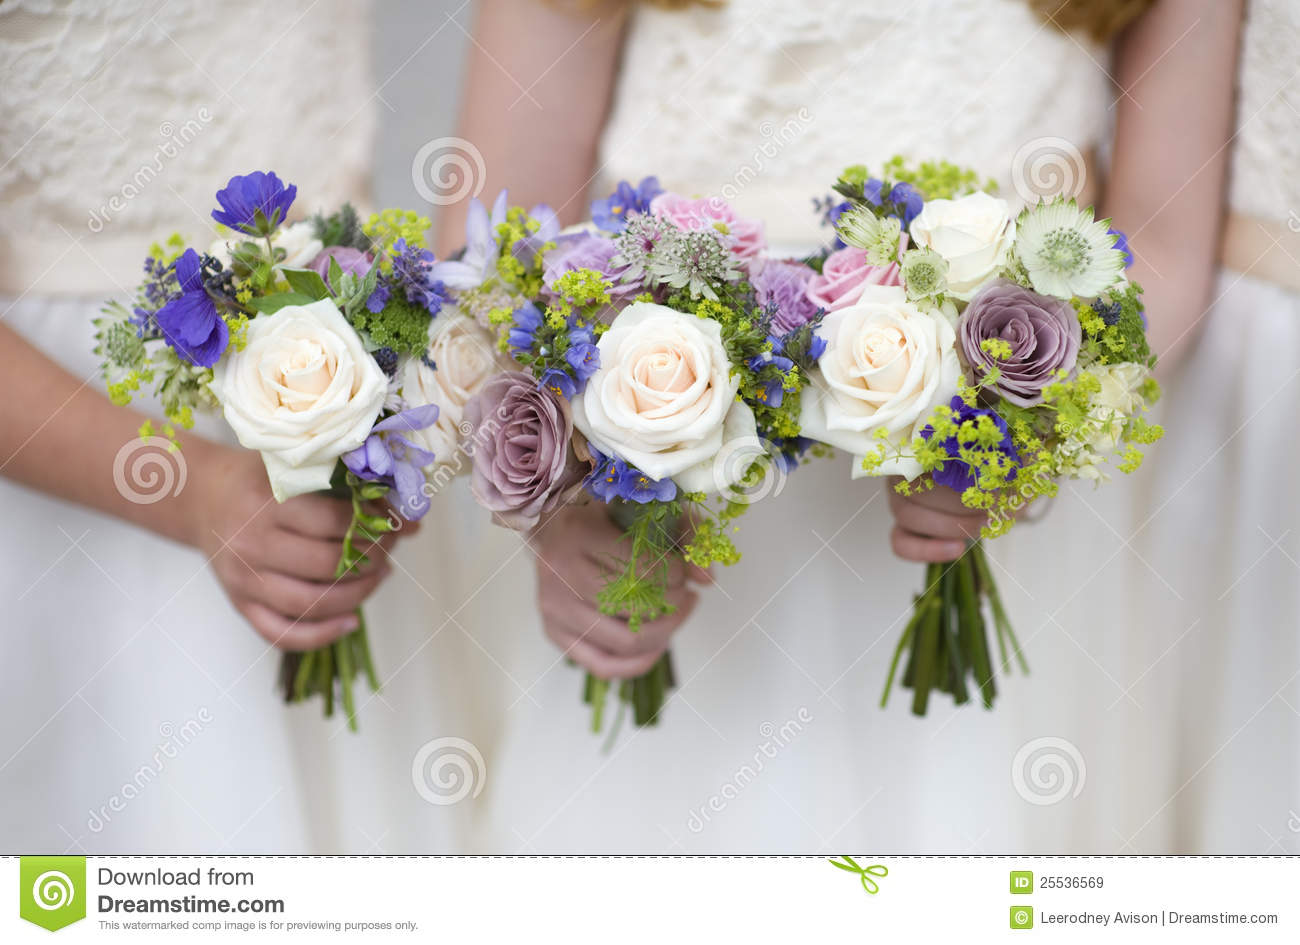 three wedding bouquets held by bridesmaids or flowergirls